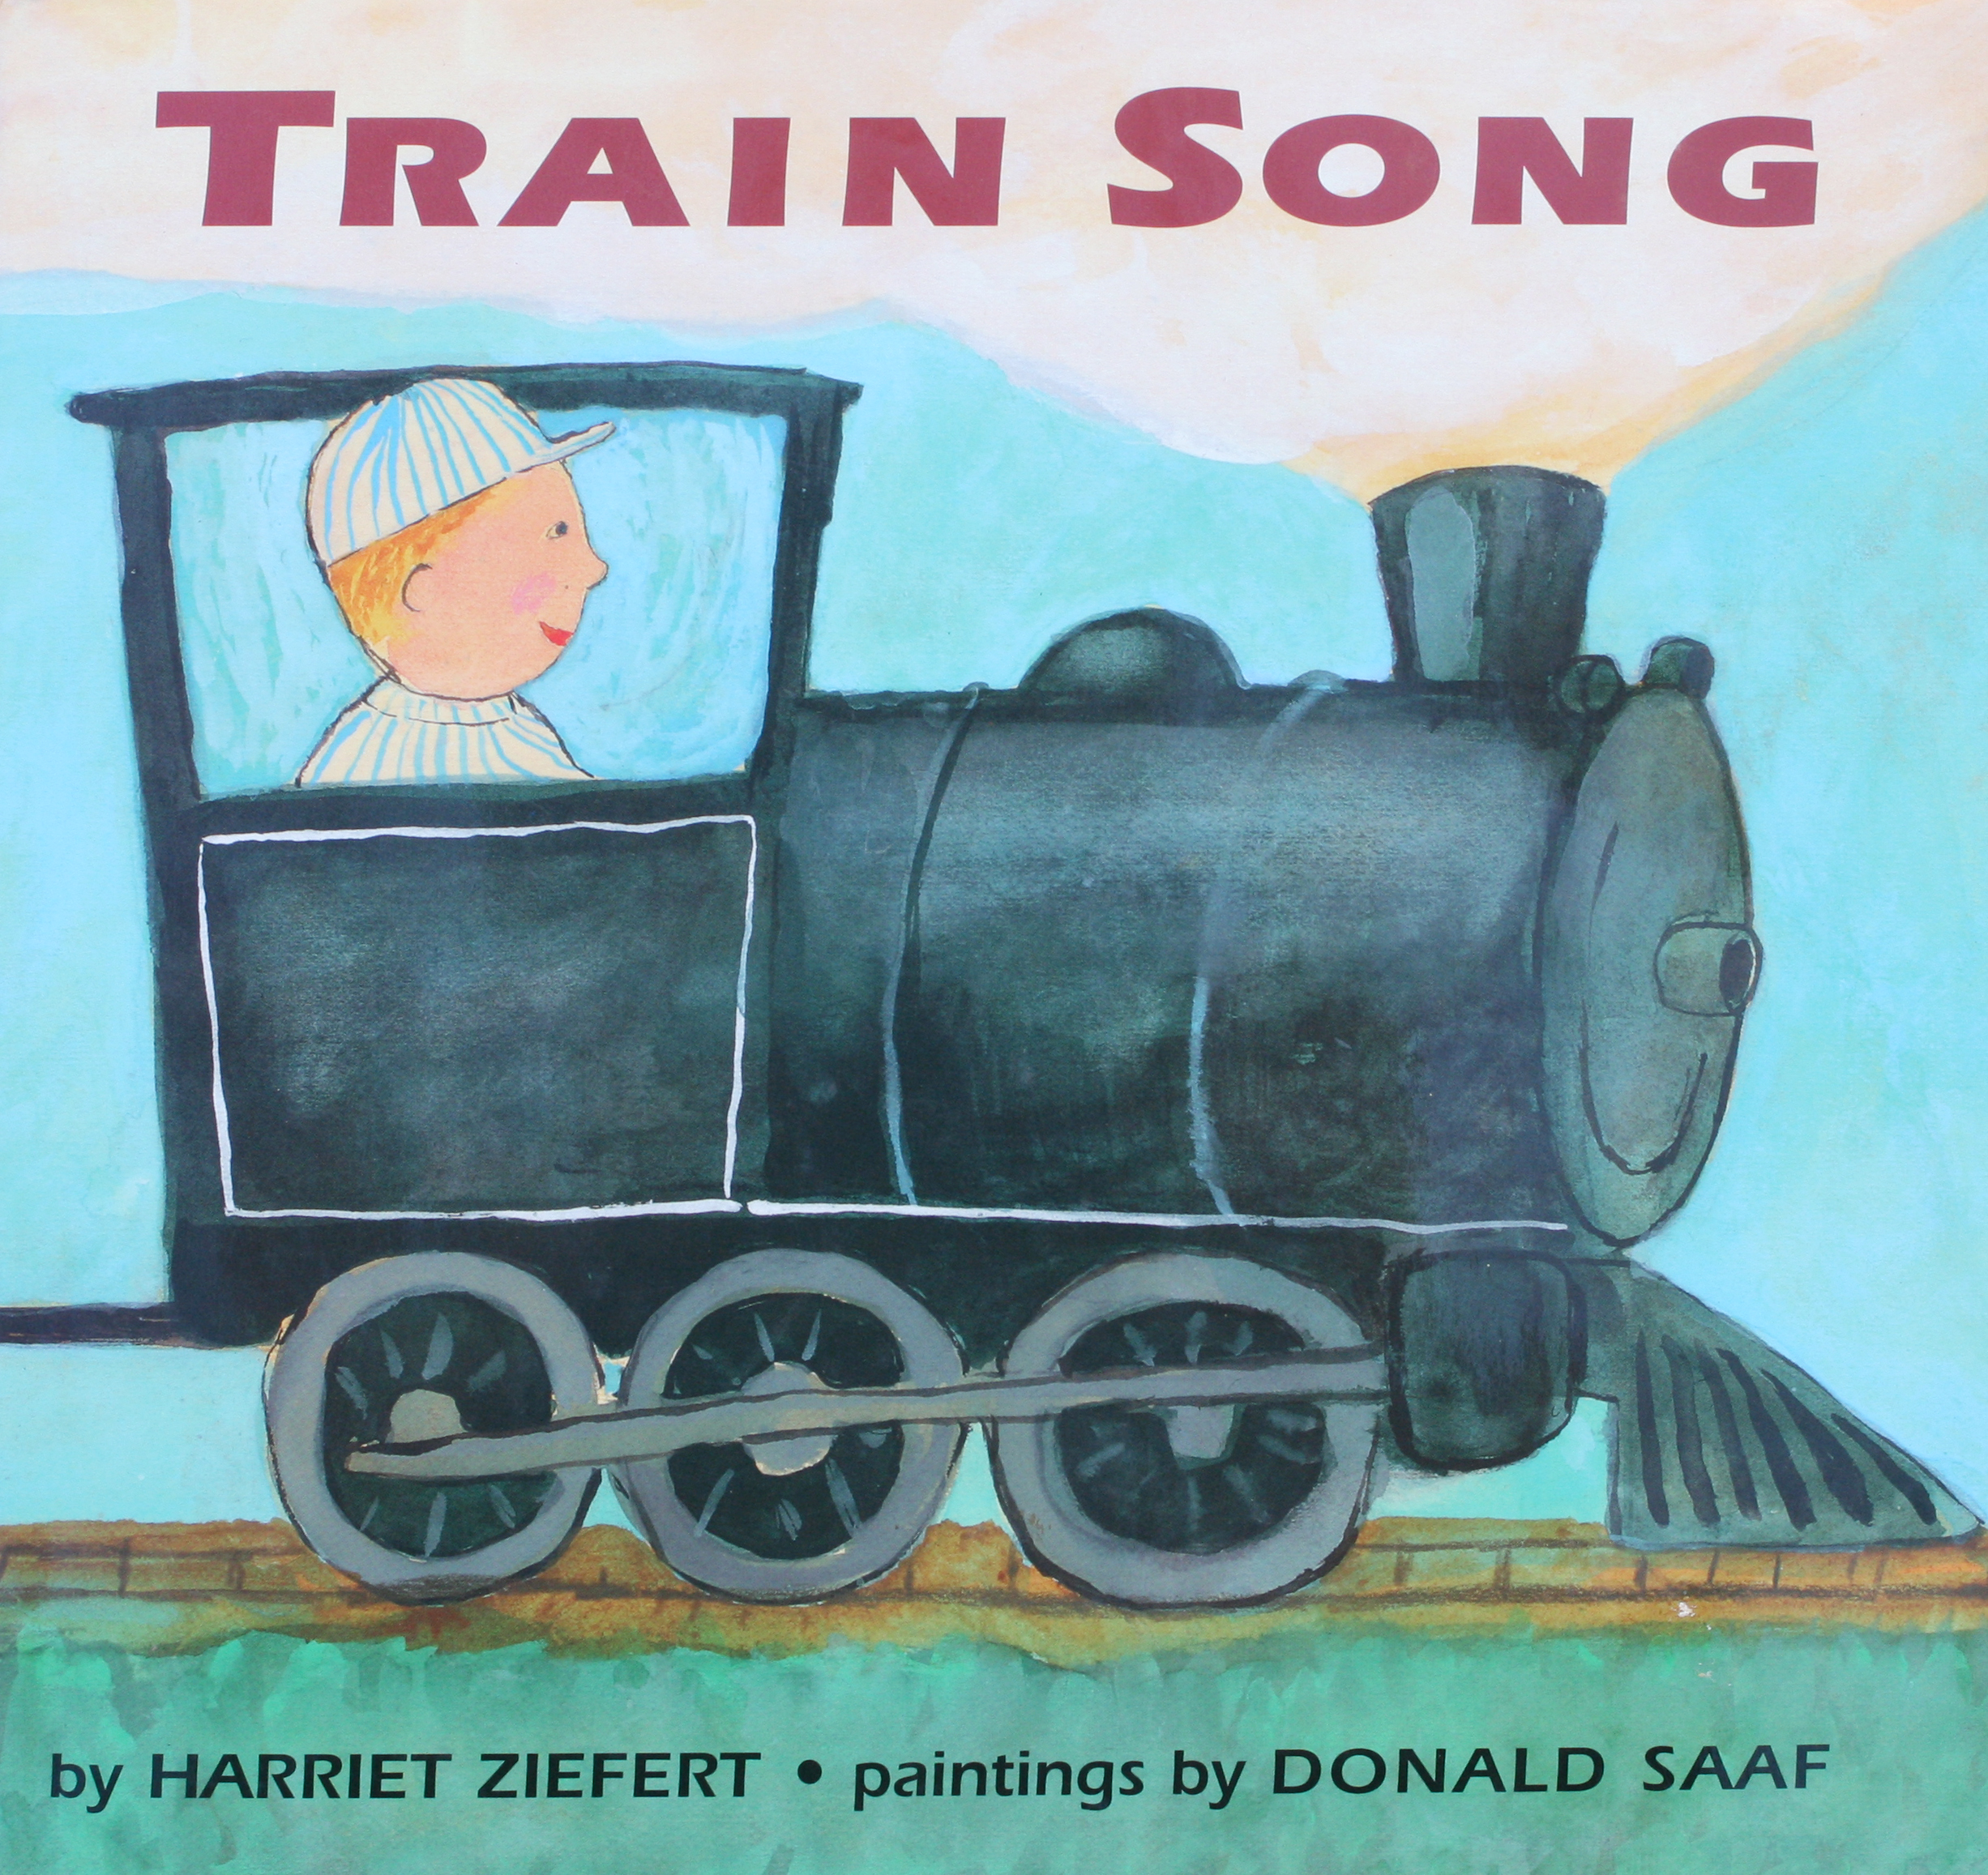 trainsong cover.jpg